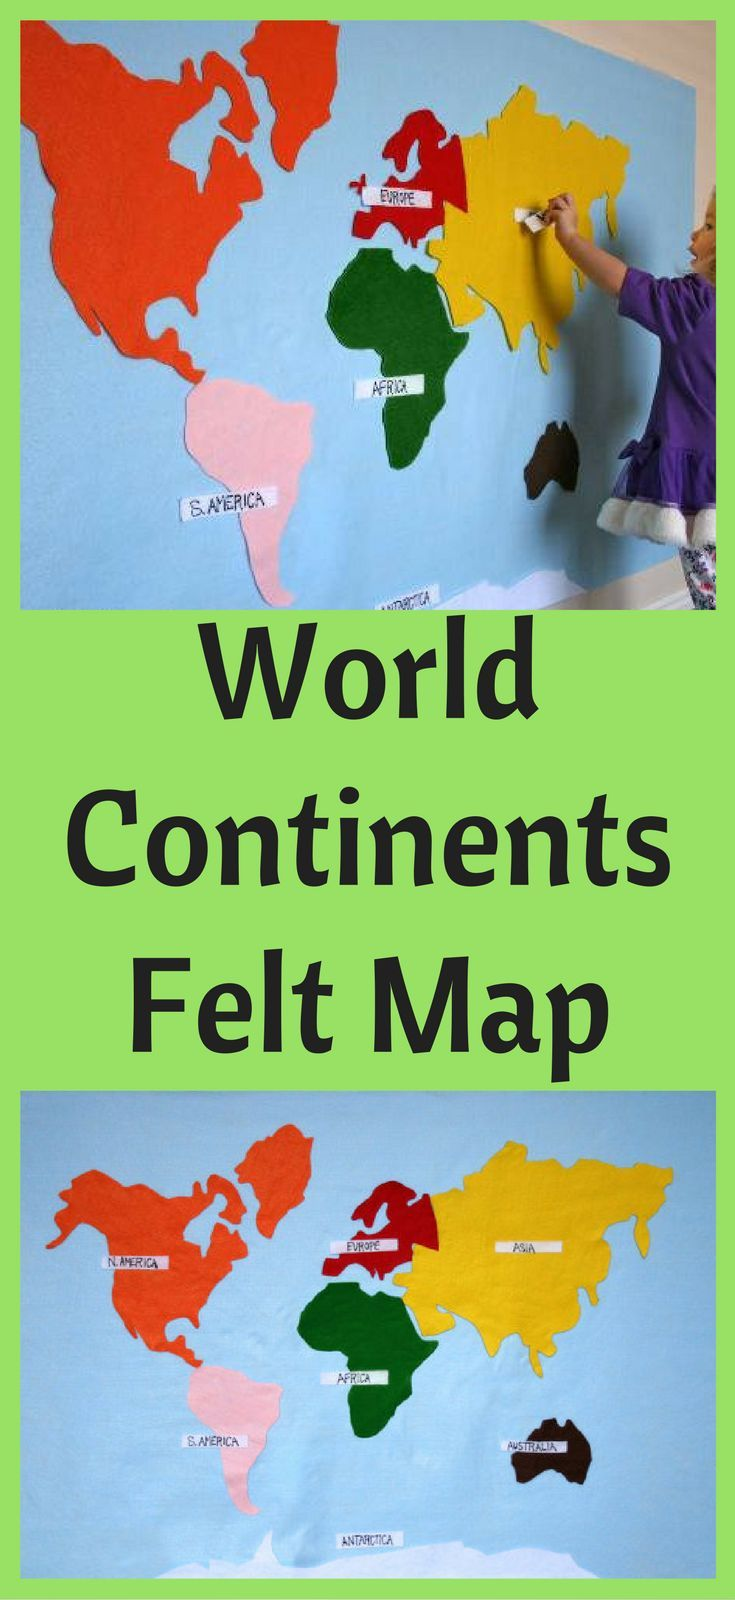 Montessori felt map of world continents spanish french english or montessori felt map of world continents spanish french english or german labels gumiabroncs Gallery